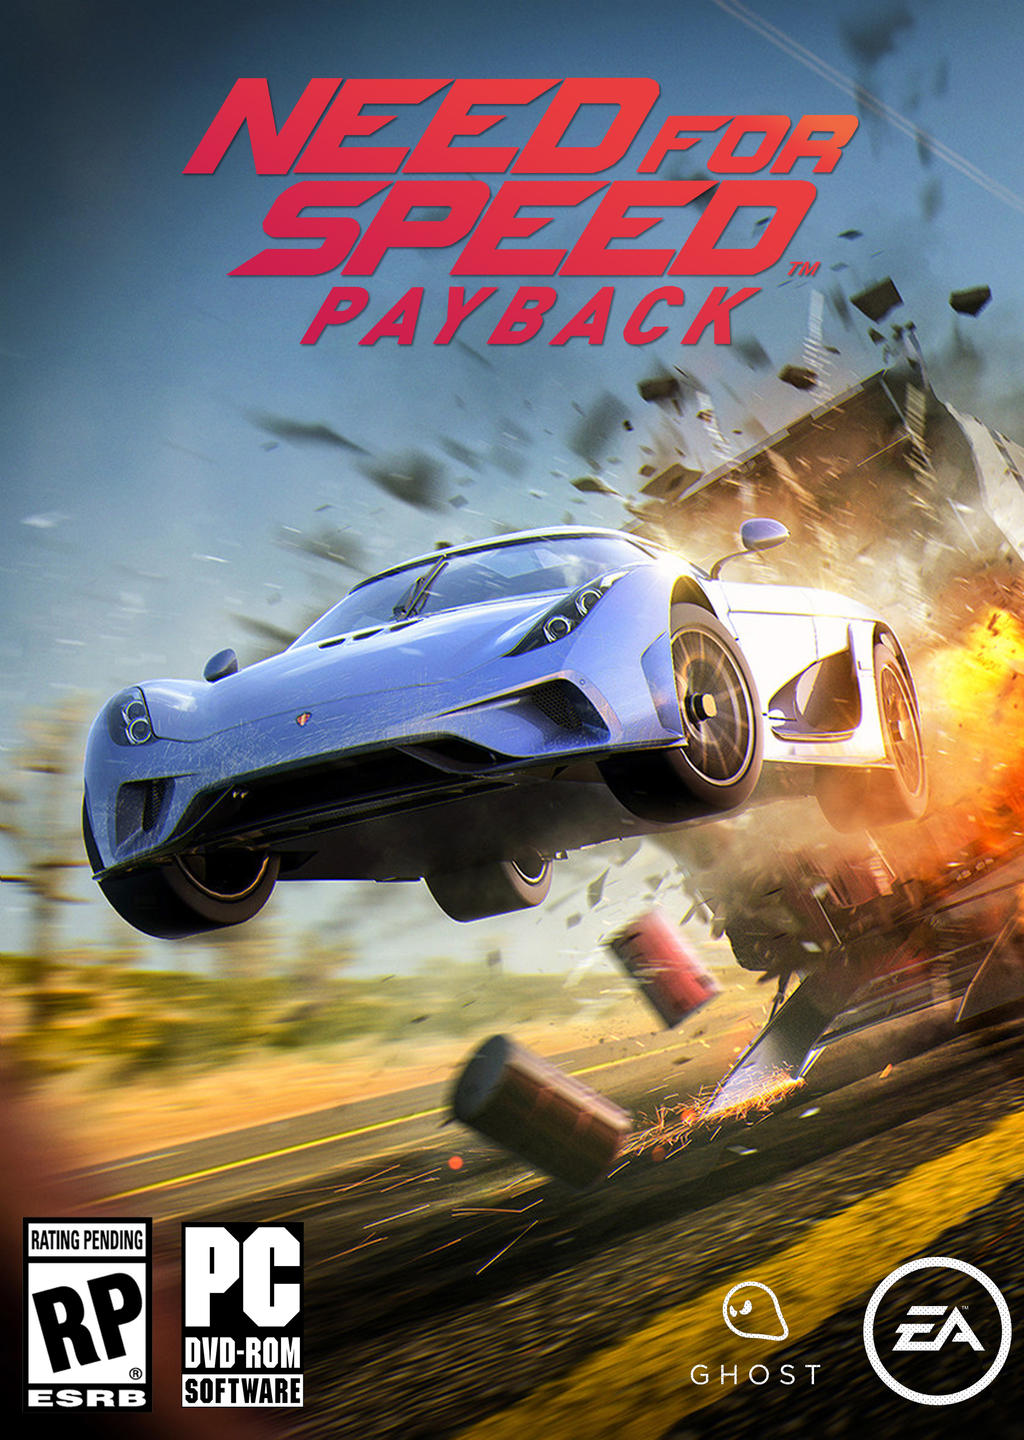 Need for Speed Payback Alternative Cover by Mighoet on